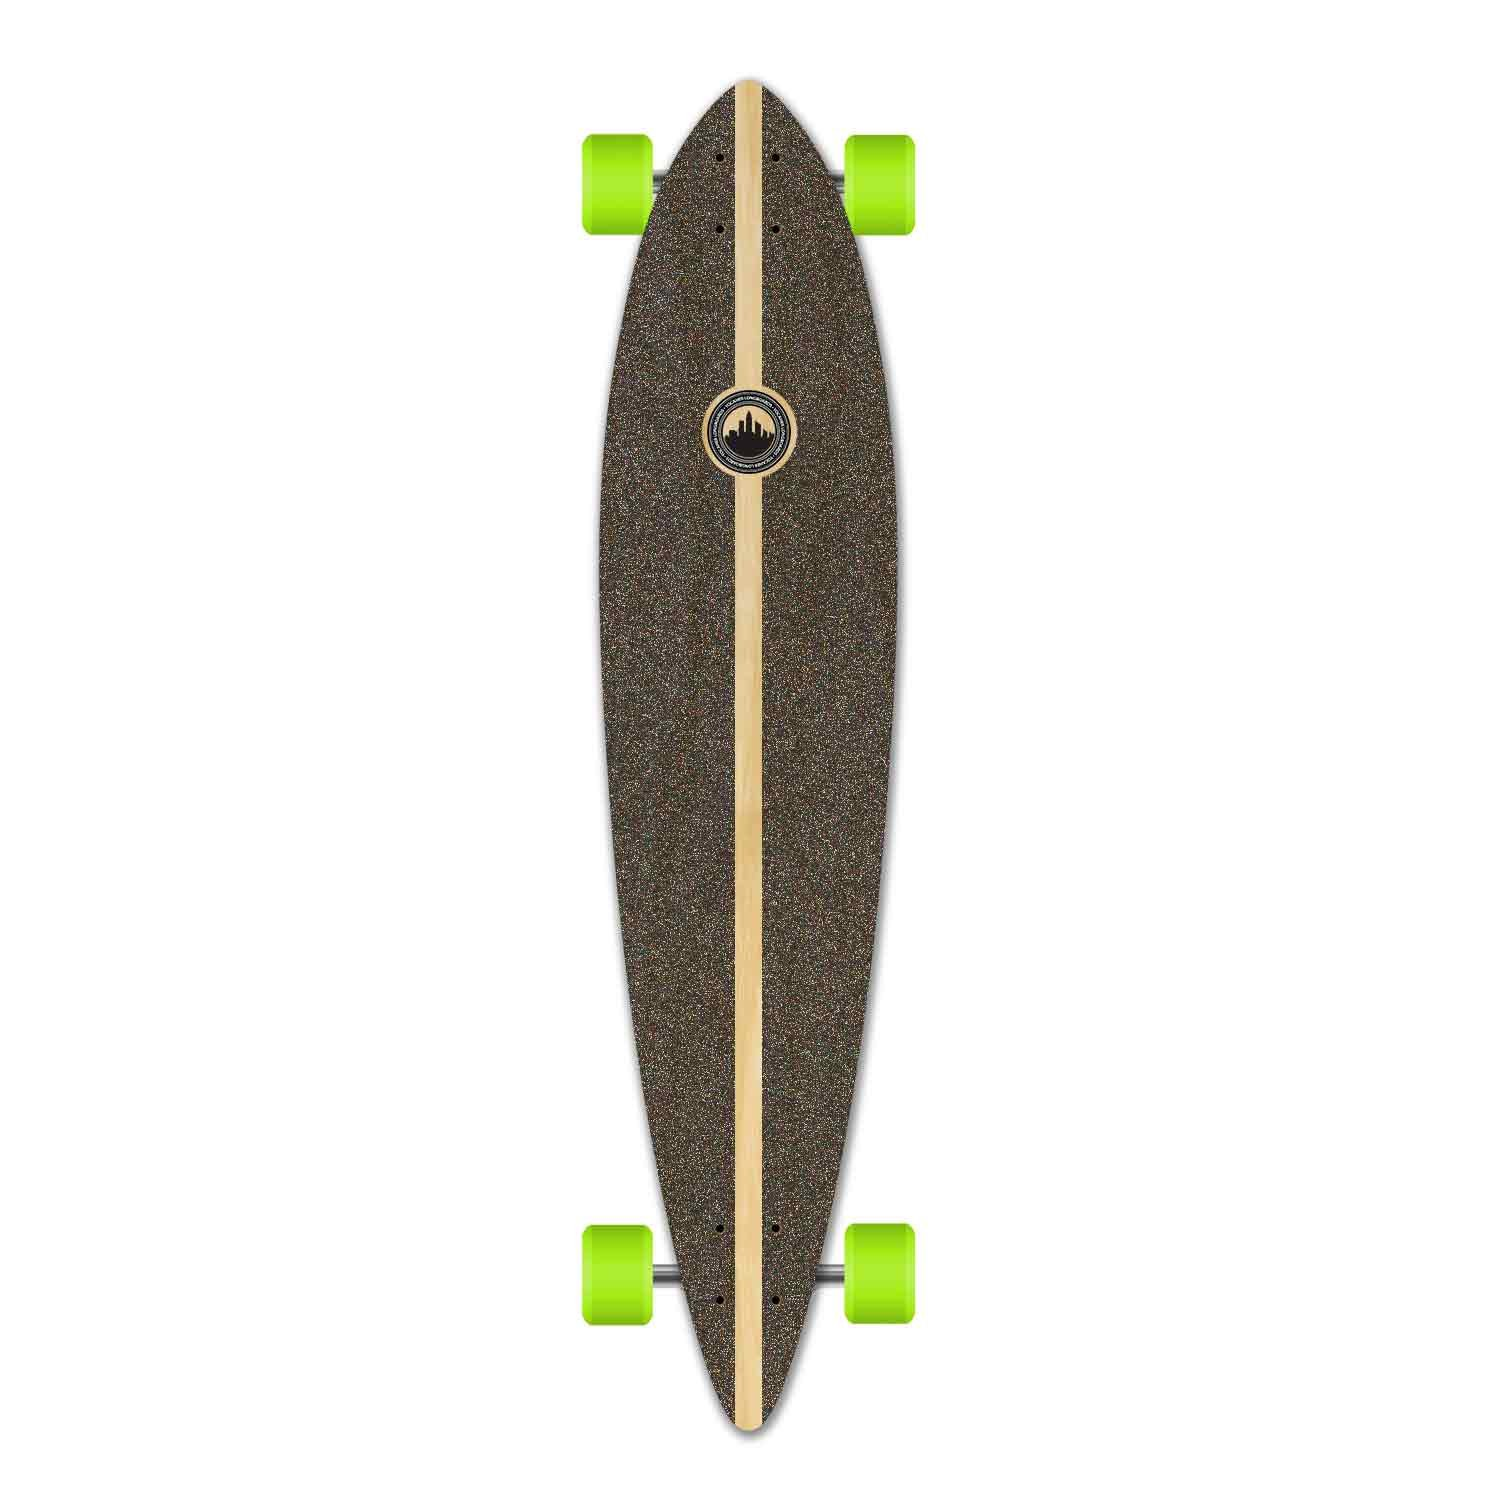 Yocaher Pintail Flat Pro Longboard Complete Cruiser Freeride Skateboard and Decks